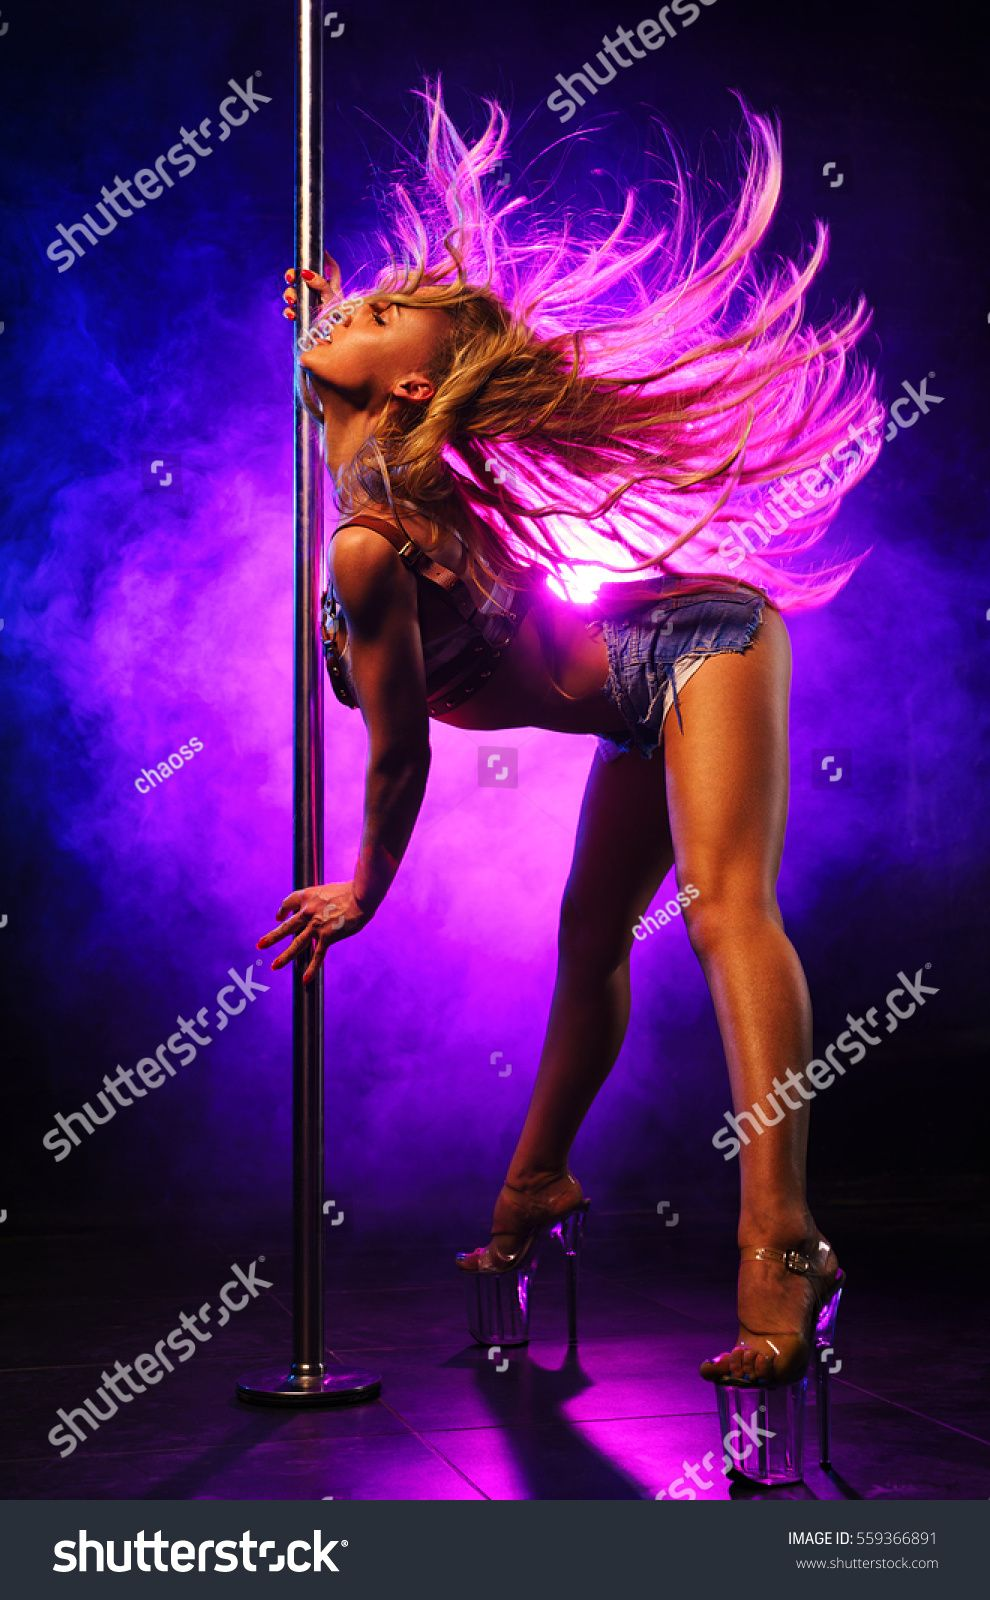 Hot Pole Dancing